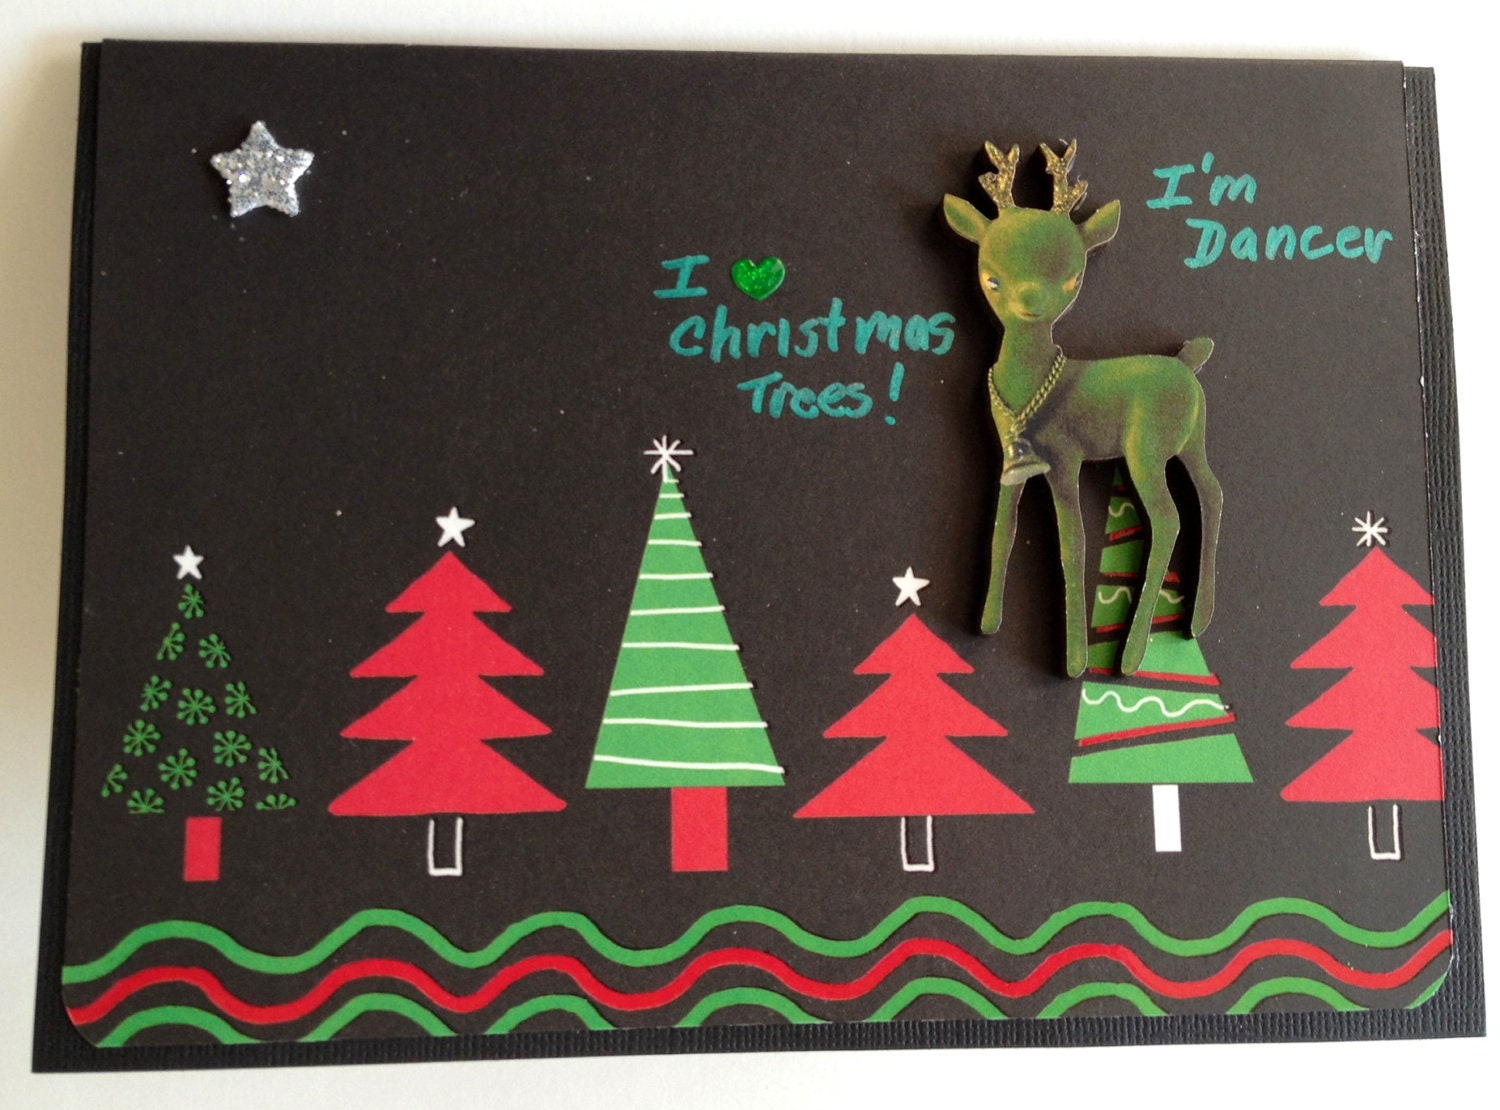 3D Reindeer Dancer Handmade Christmas Card by OtherworldlyCards